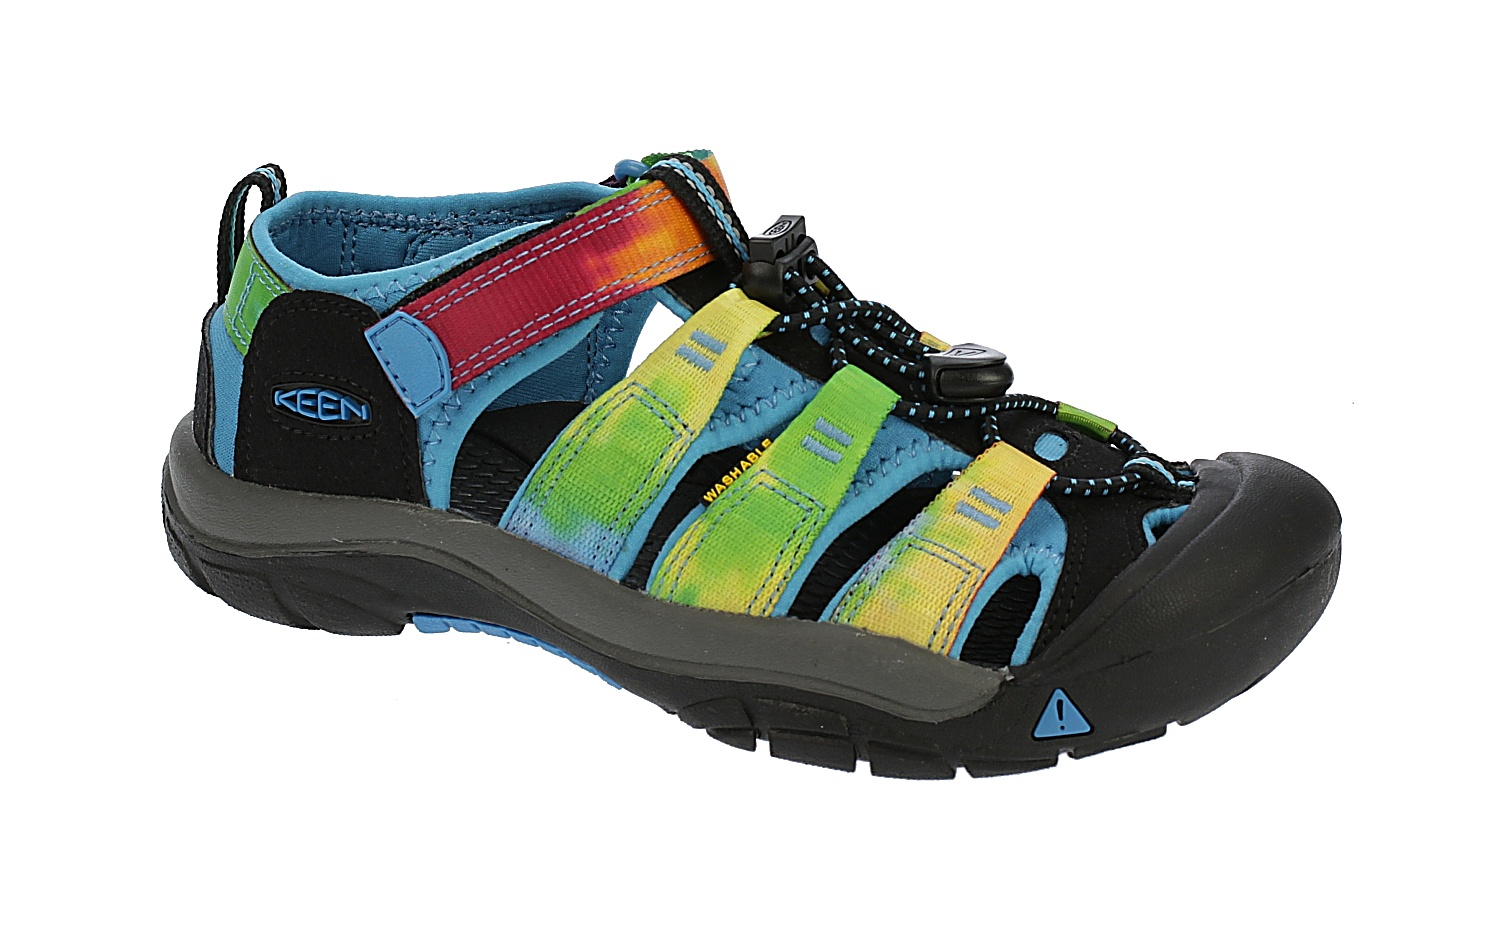 44bab4263fa8 shoes Keen Newport H2 - Rainbow Tie Dye - Snowboard shop